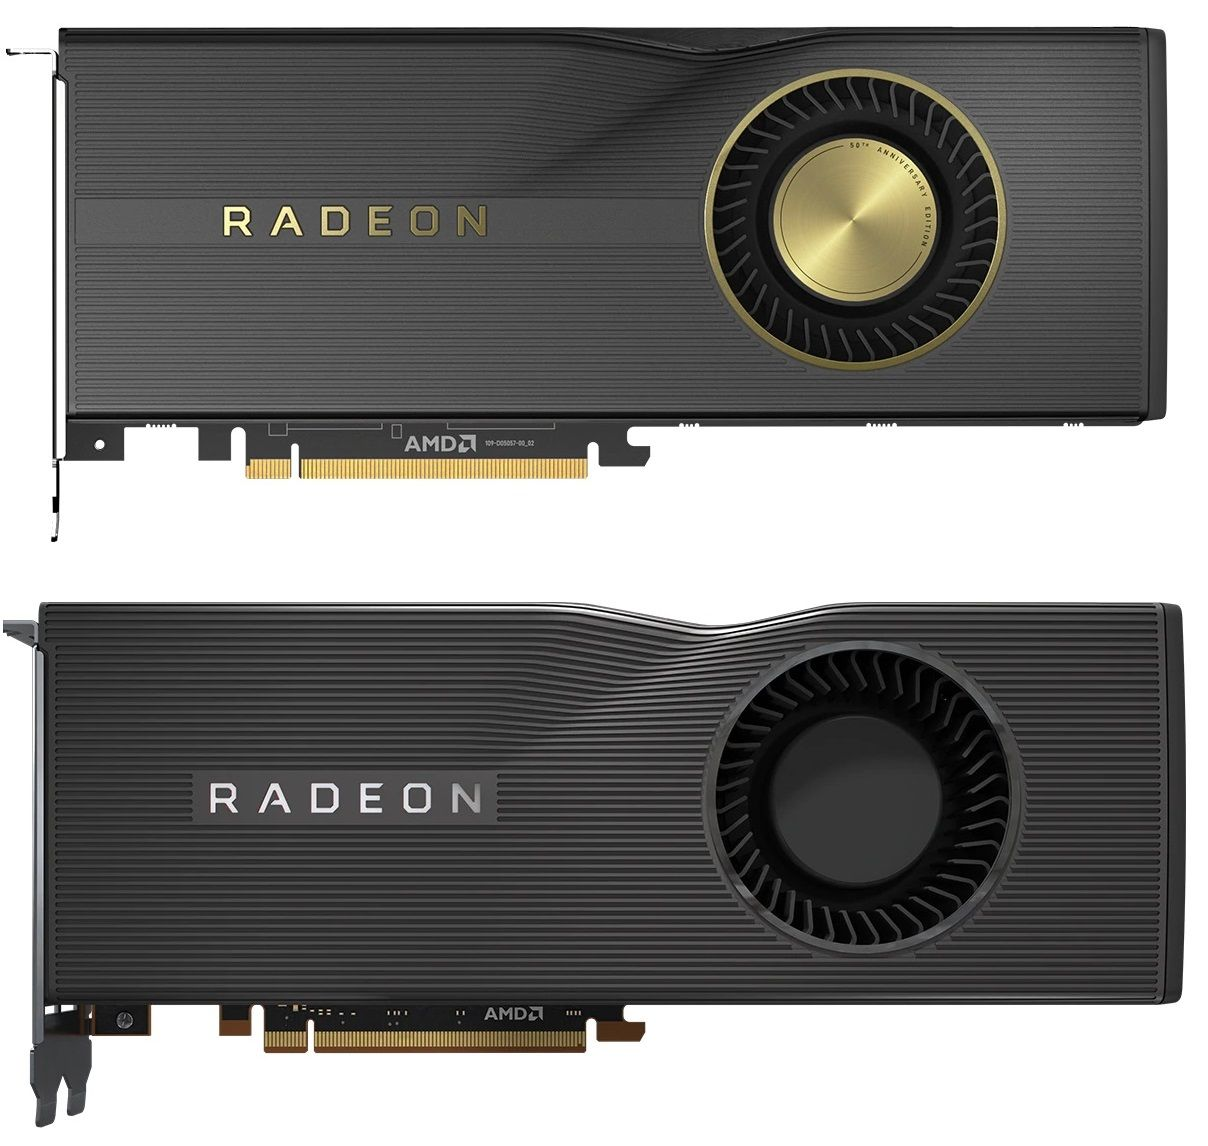 New Upcoming Amd Radeon Rx 5700 Series Graphics Cards Have Been Added To Our Database Compare Their Specifications With Other Gpus Graphic Card Amd Nvidia